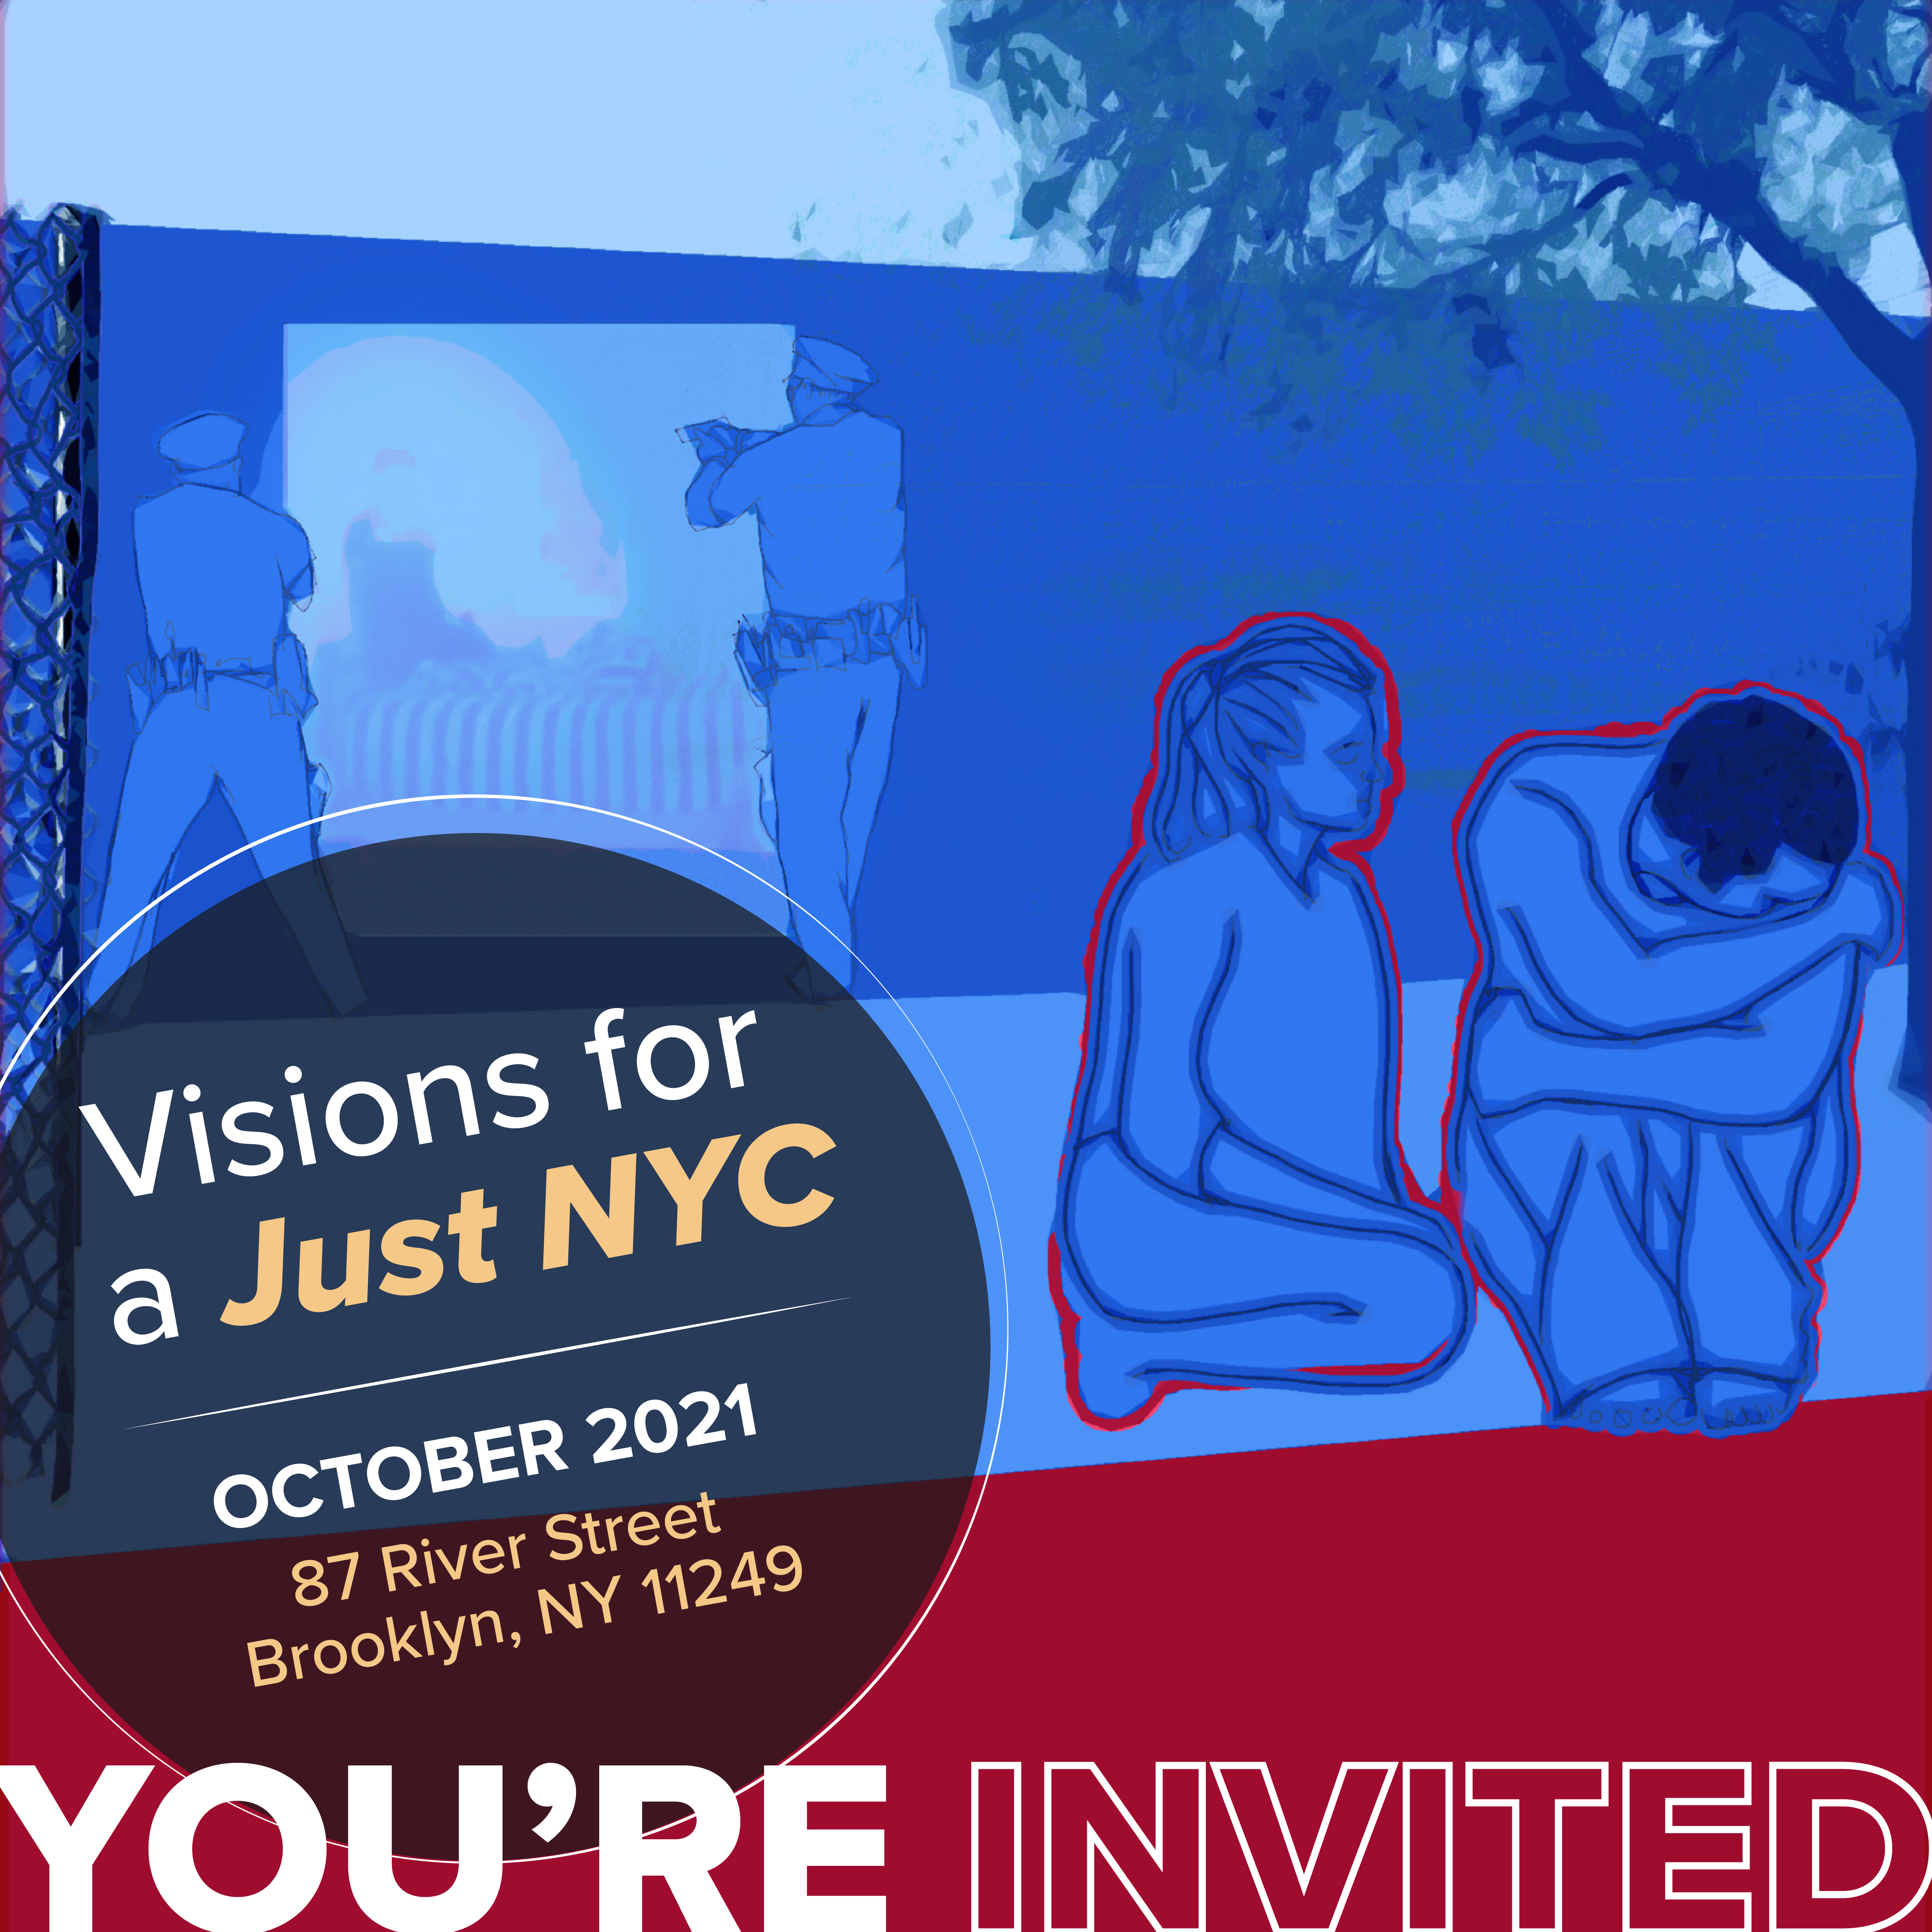 A mural panel in violet and red depicting a person having a mental health crisis in front of a background of police with guns drawn. Text reads: Visions for a Just NYC. October 2021. 87 River Street, Brooklyn NY, 11249.